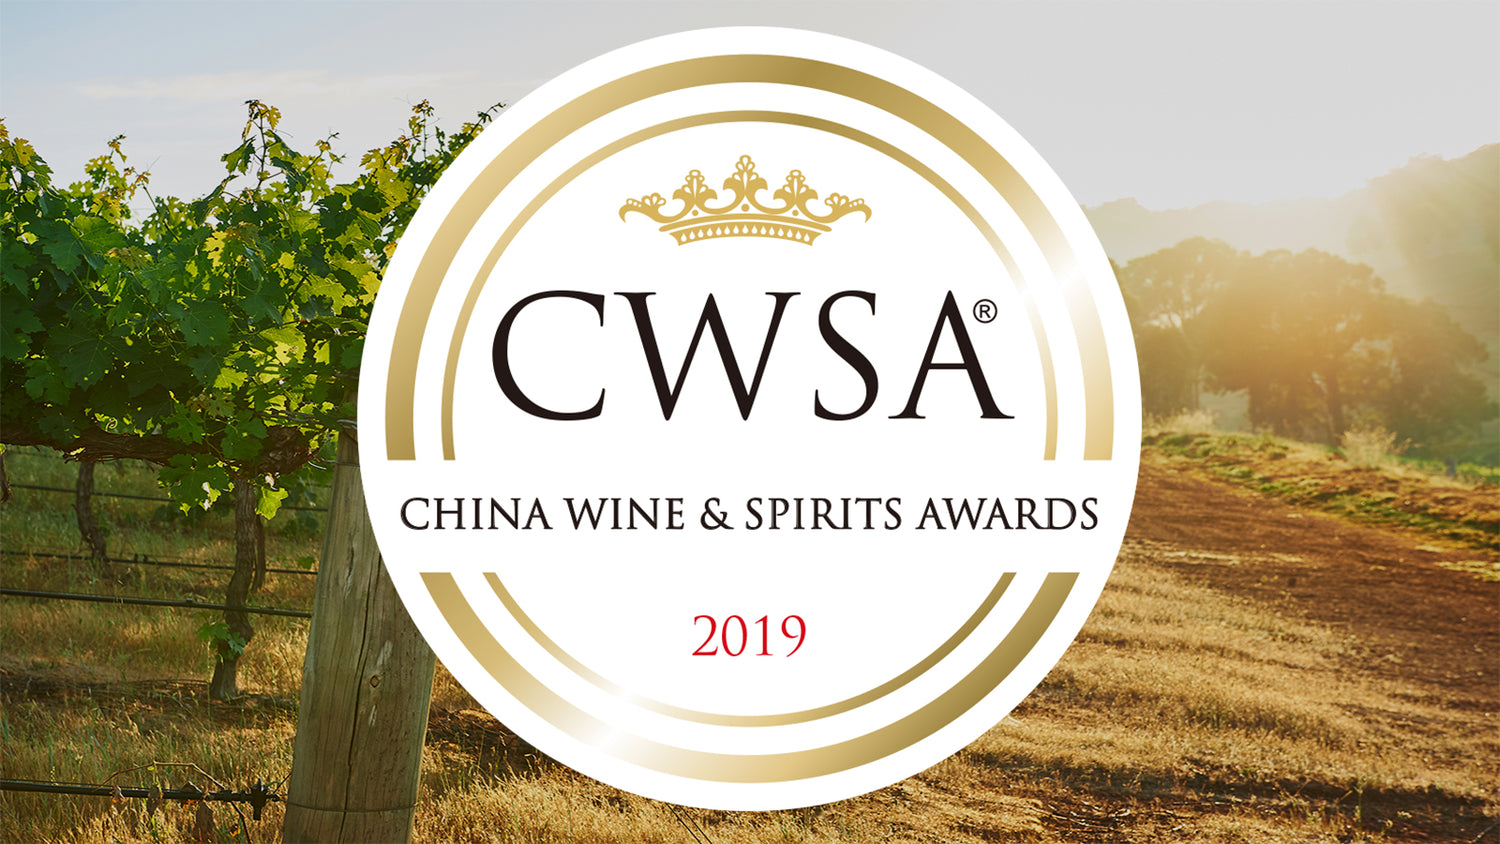 millbrook wins three gold medals at the china wine & spirits awards 2019